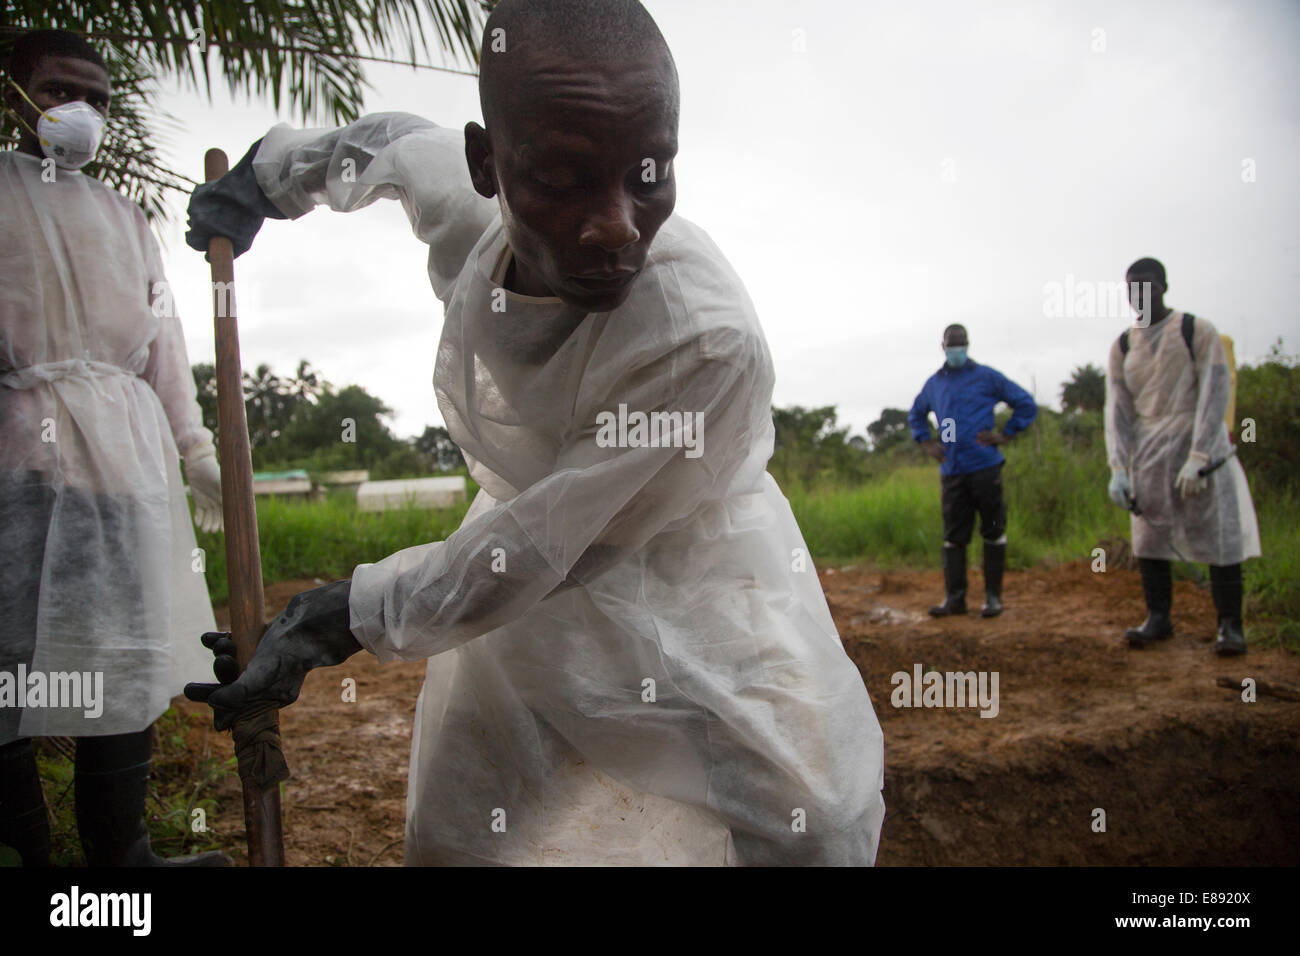 Member of the burial team shovels in a recently filled grave in Unification Town, Liberia. - Stock Image